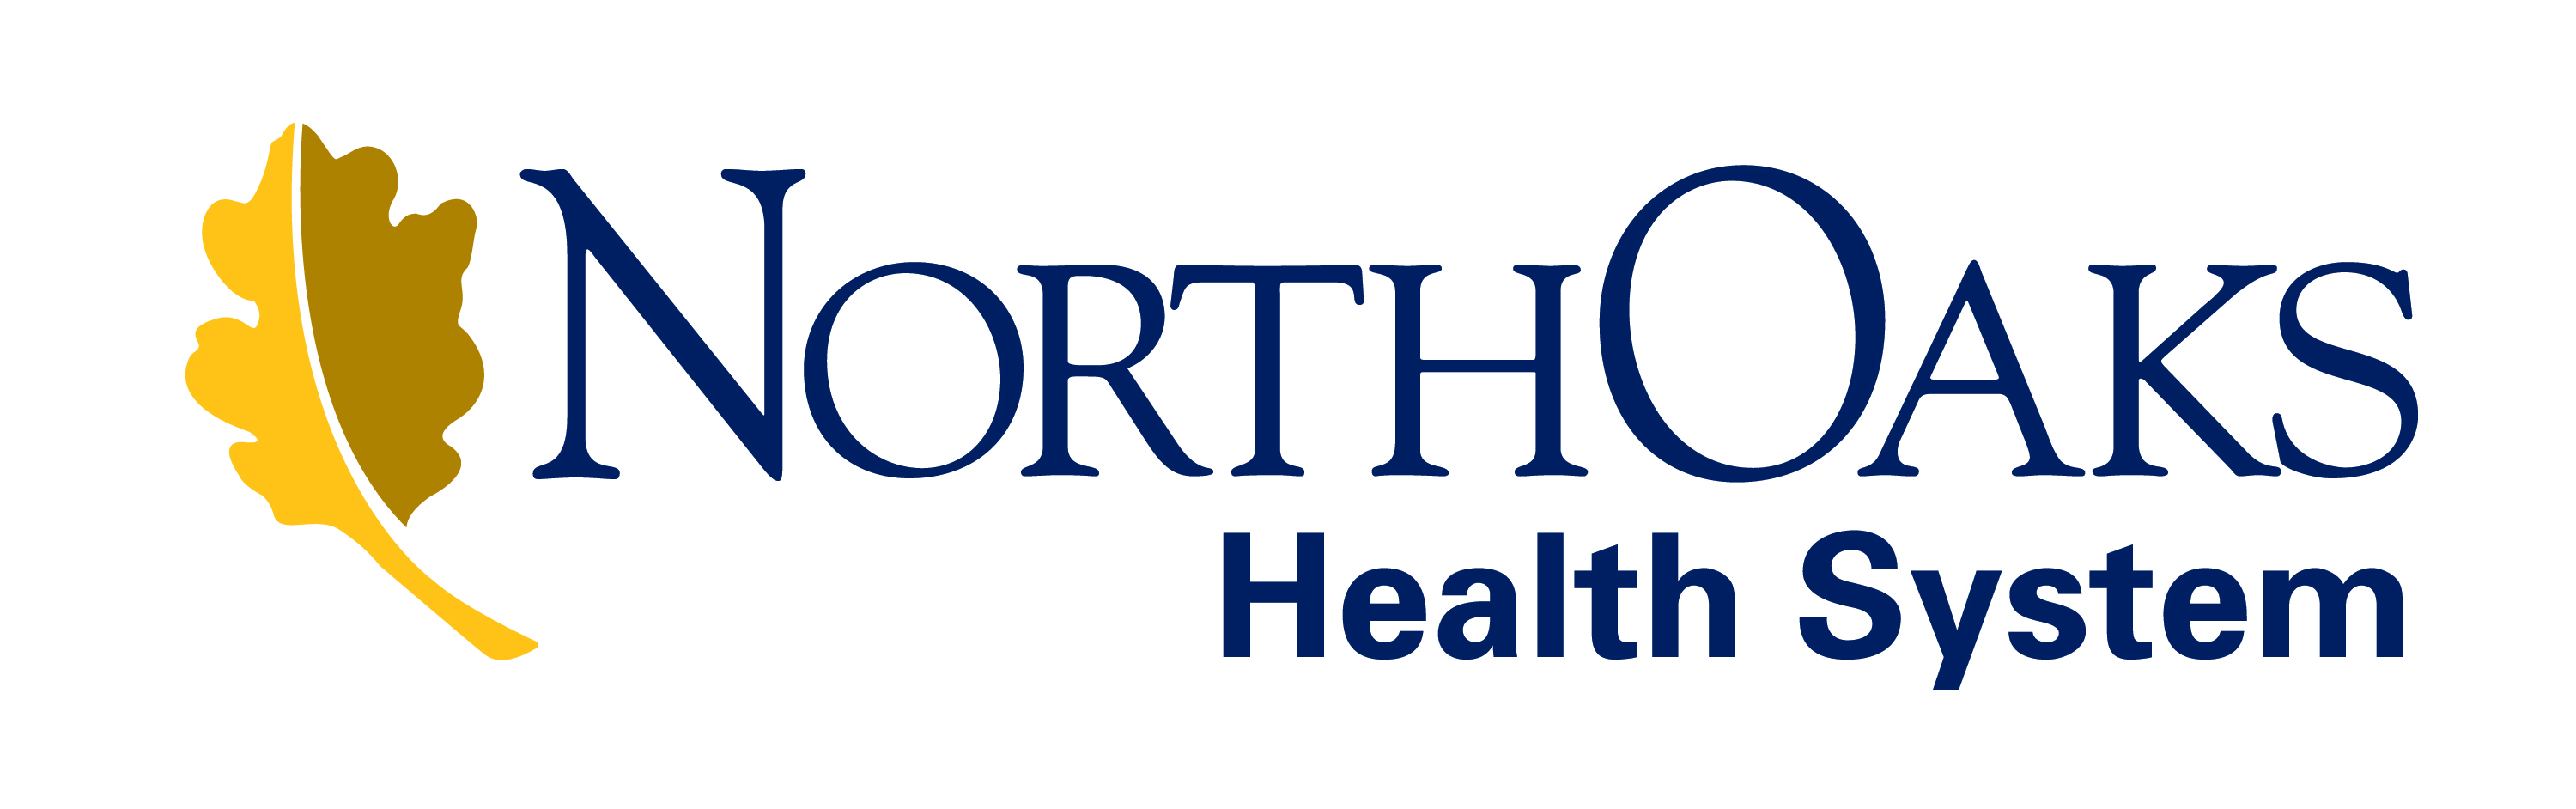 north oaks health system logo